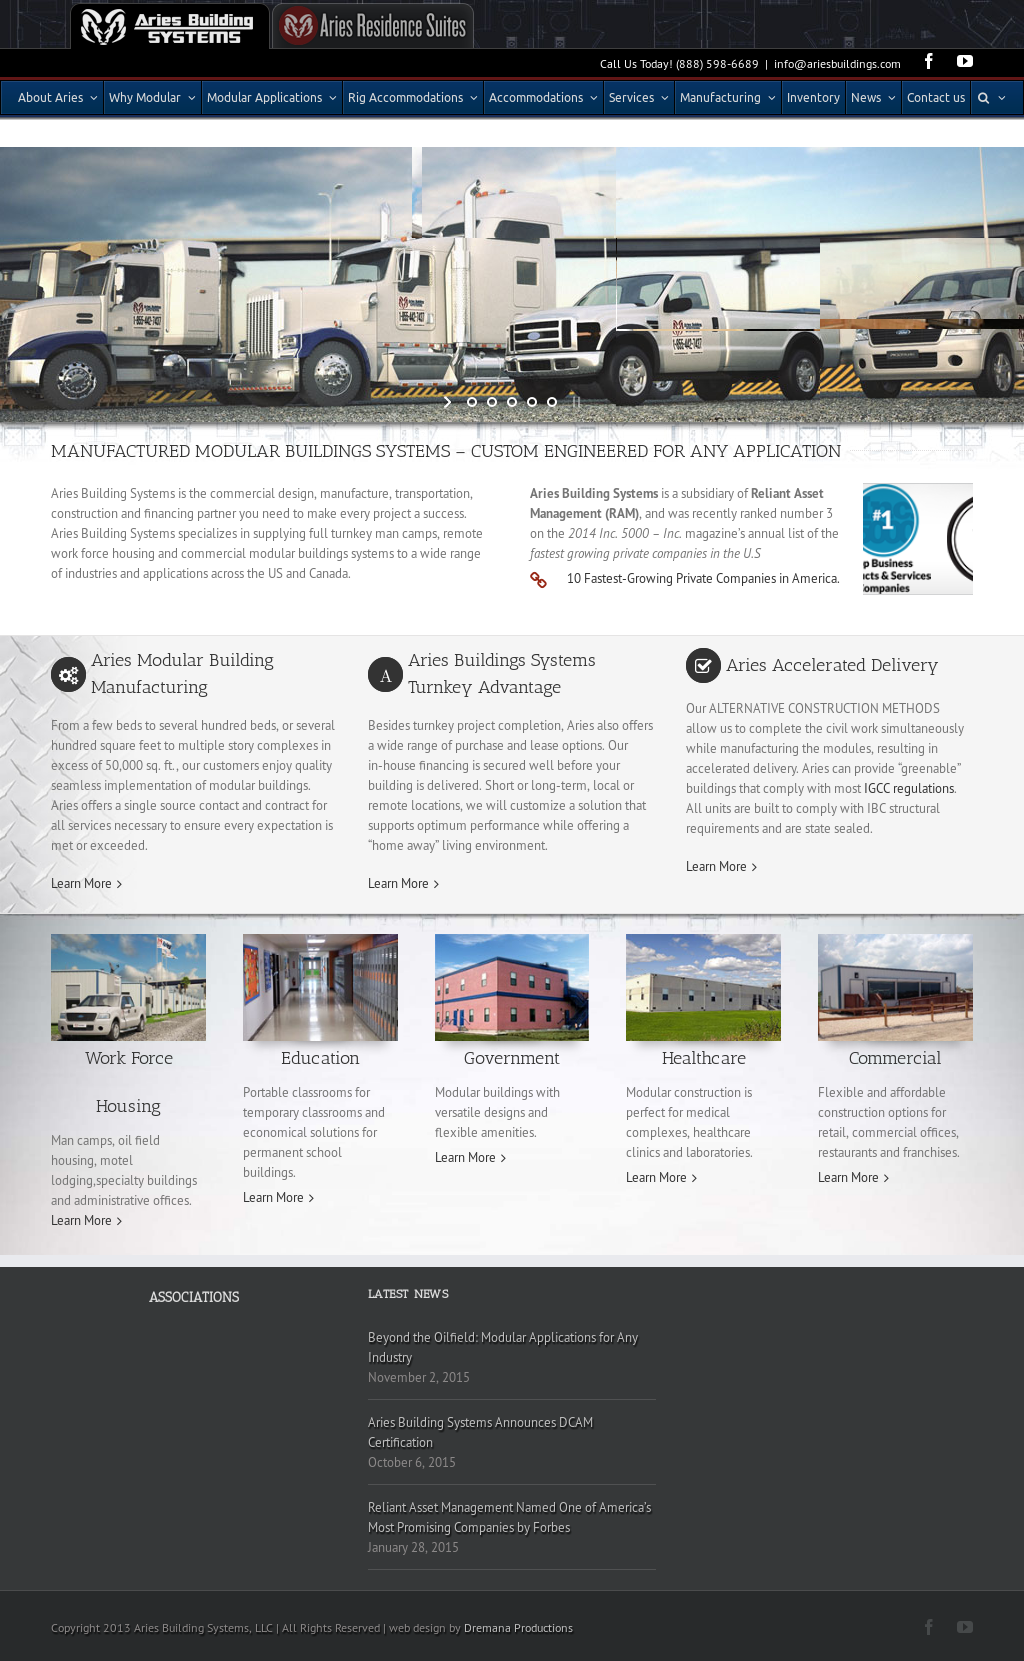 Aries Building Systems Competitors, Revenue and Employees - Owler